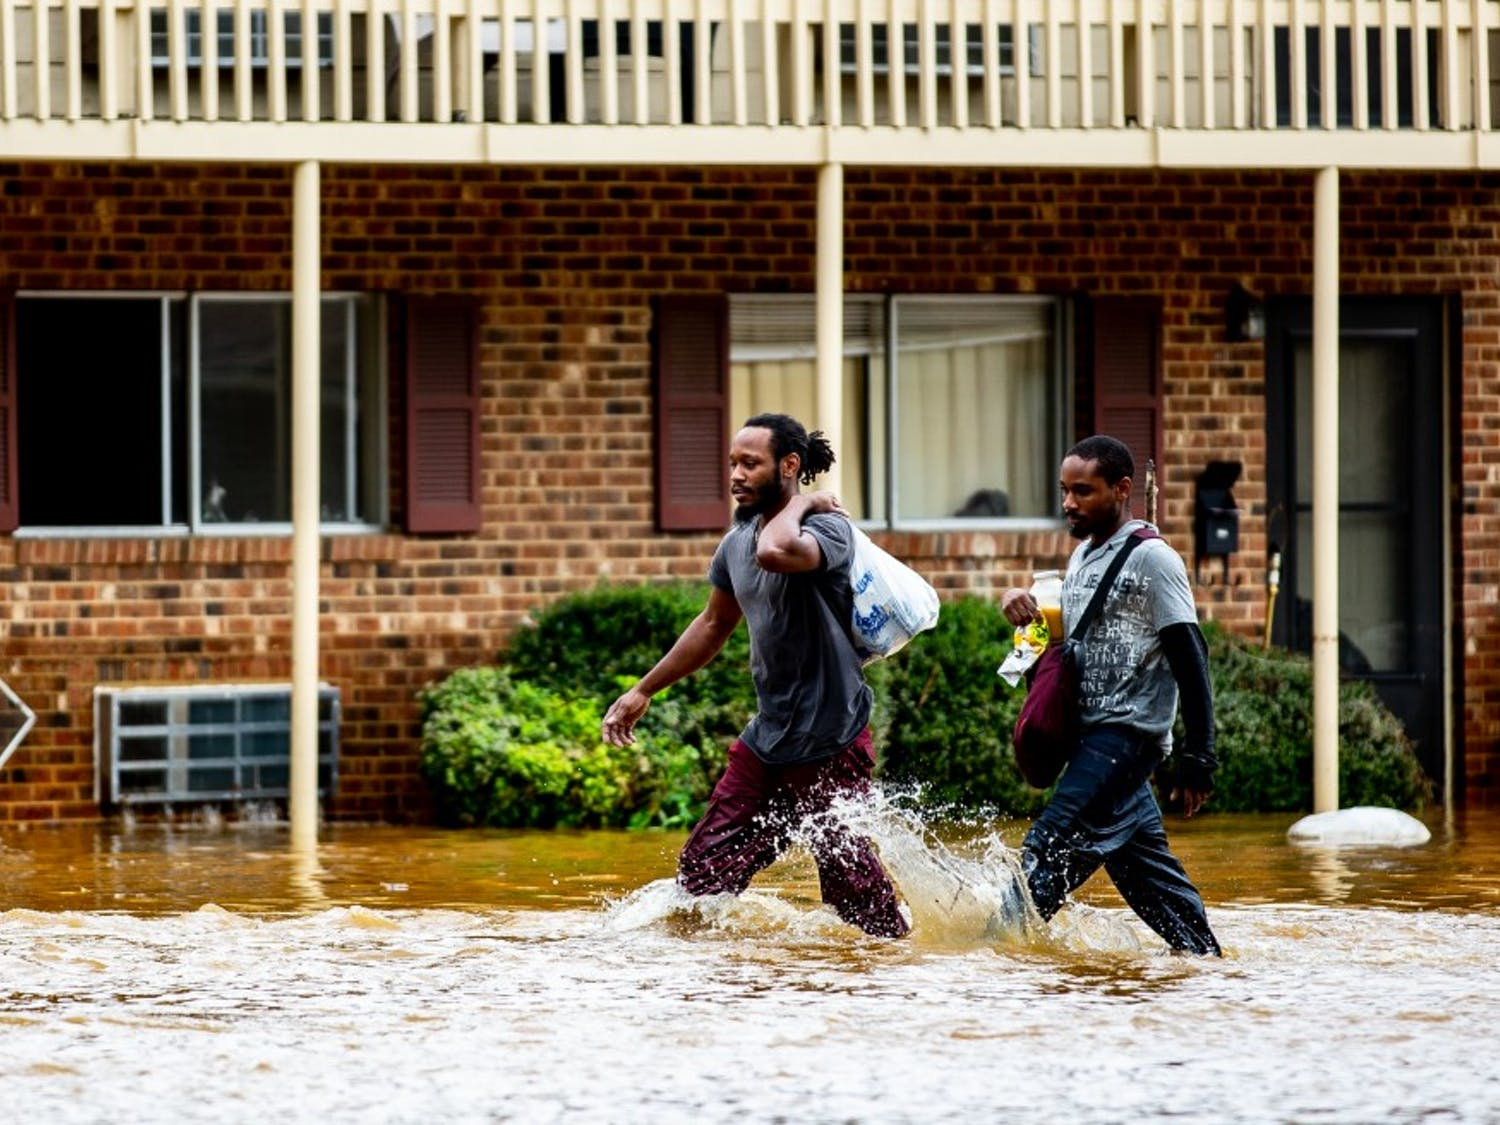 """Kyrie and Michael Benton carry food and some of their waterlogged belongings through the grounds of Camelot Village apartments in Chapel Hill the morning of September 17, 2018. Chapel Hill had been seemingly spared the worst of Hurricane Florence but Sunday night into Monday morning saw a downpour of heavy rain that caused flash flooding around the Triangle. Camelot Village has seen flooding in the past but never to this degree, according to Kyrie and other residents of many years. """"I lost everything in this flood,"""" Kyrie said. Just as quickly as it flooded, the water began to recede late the same morning and early in the afternoon."""